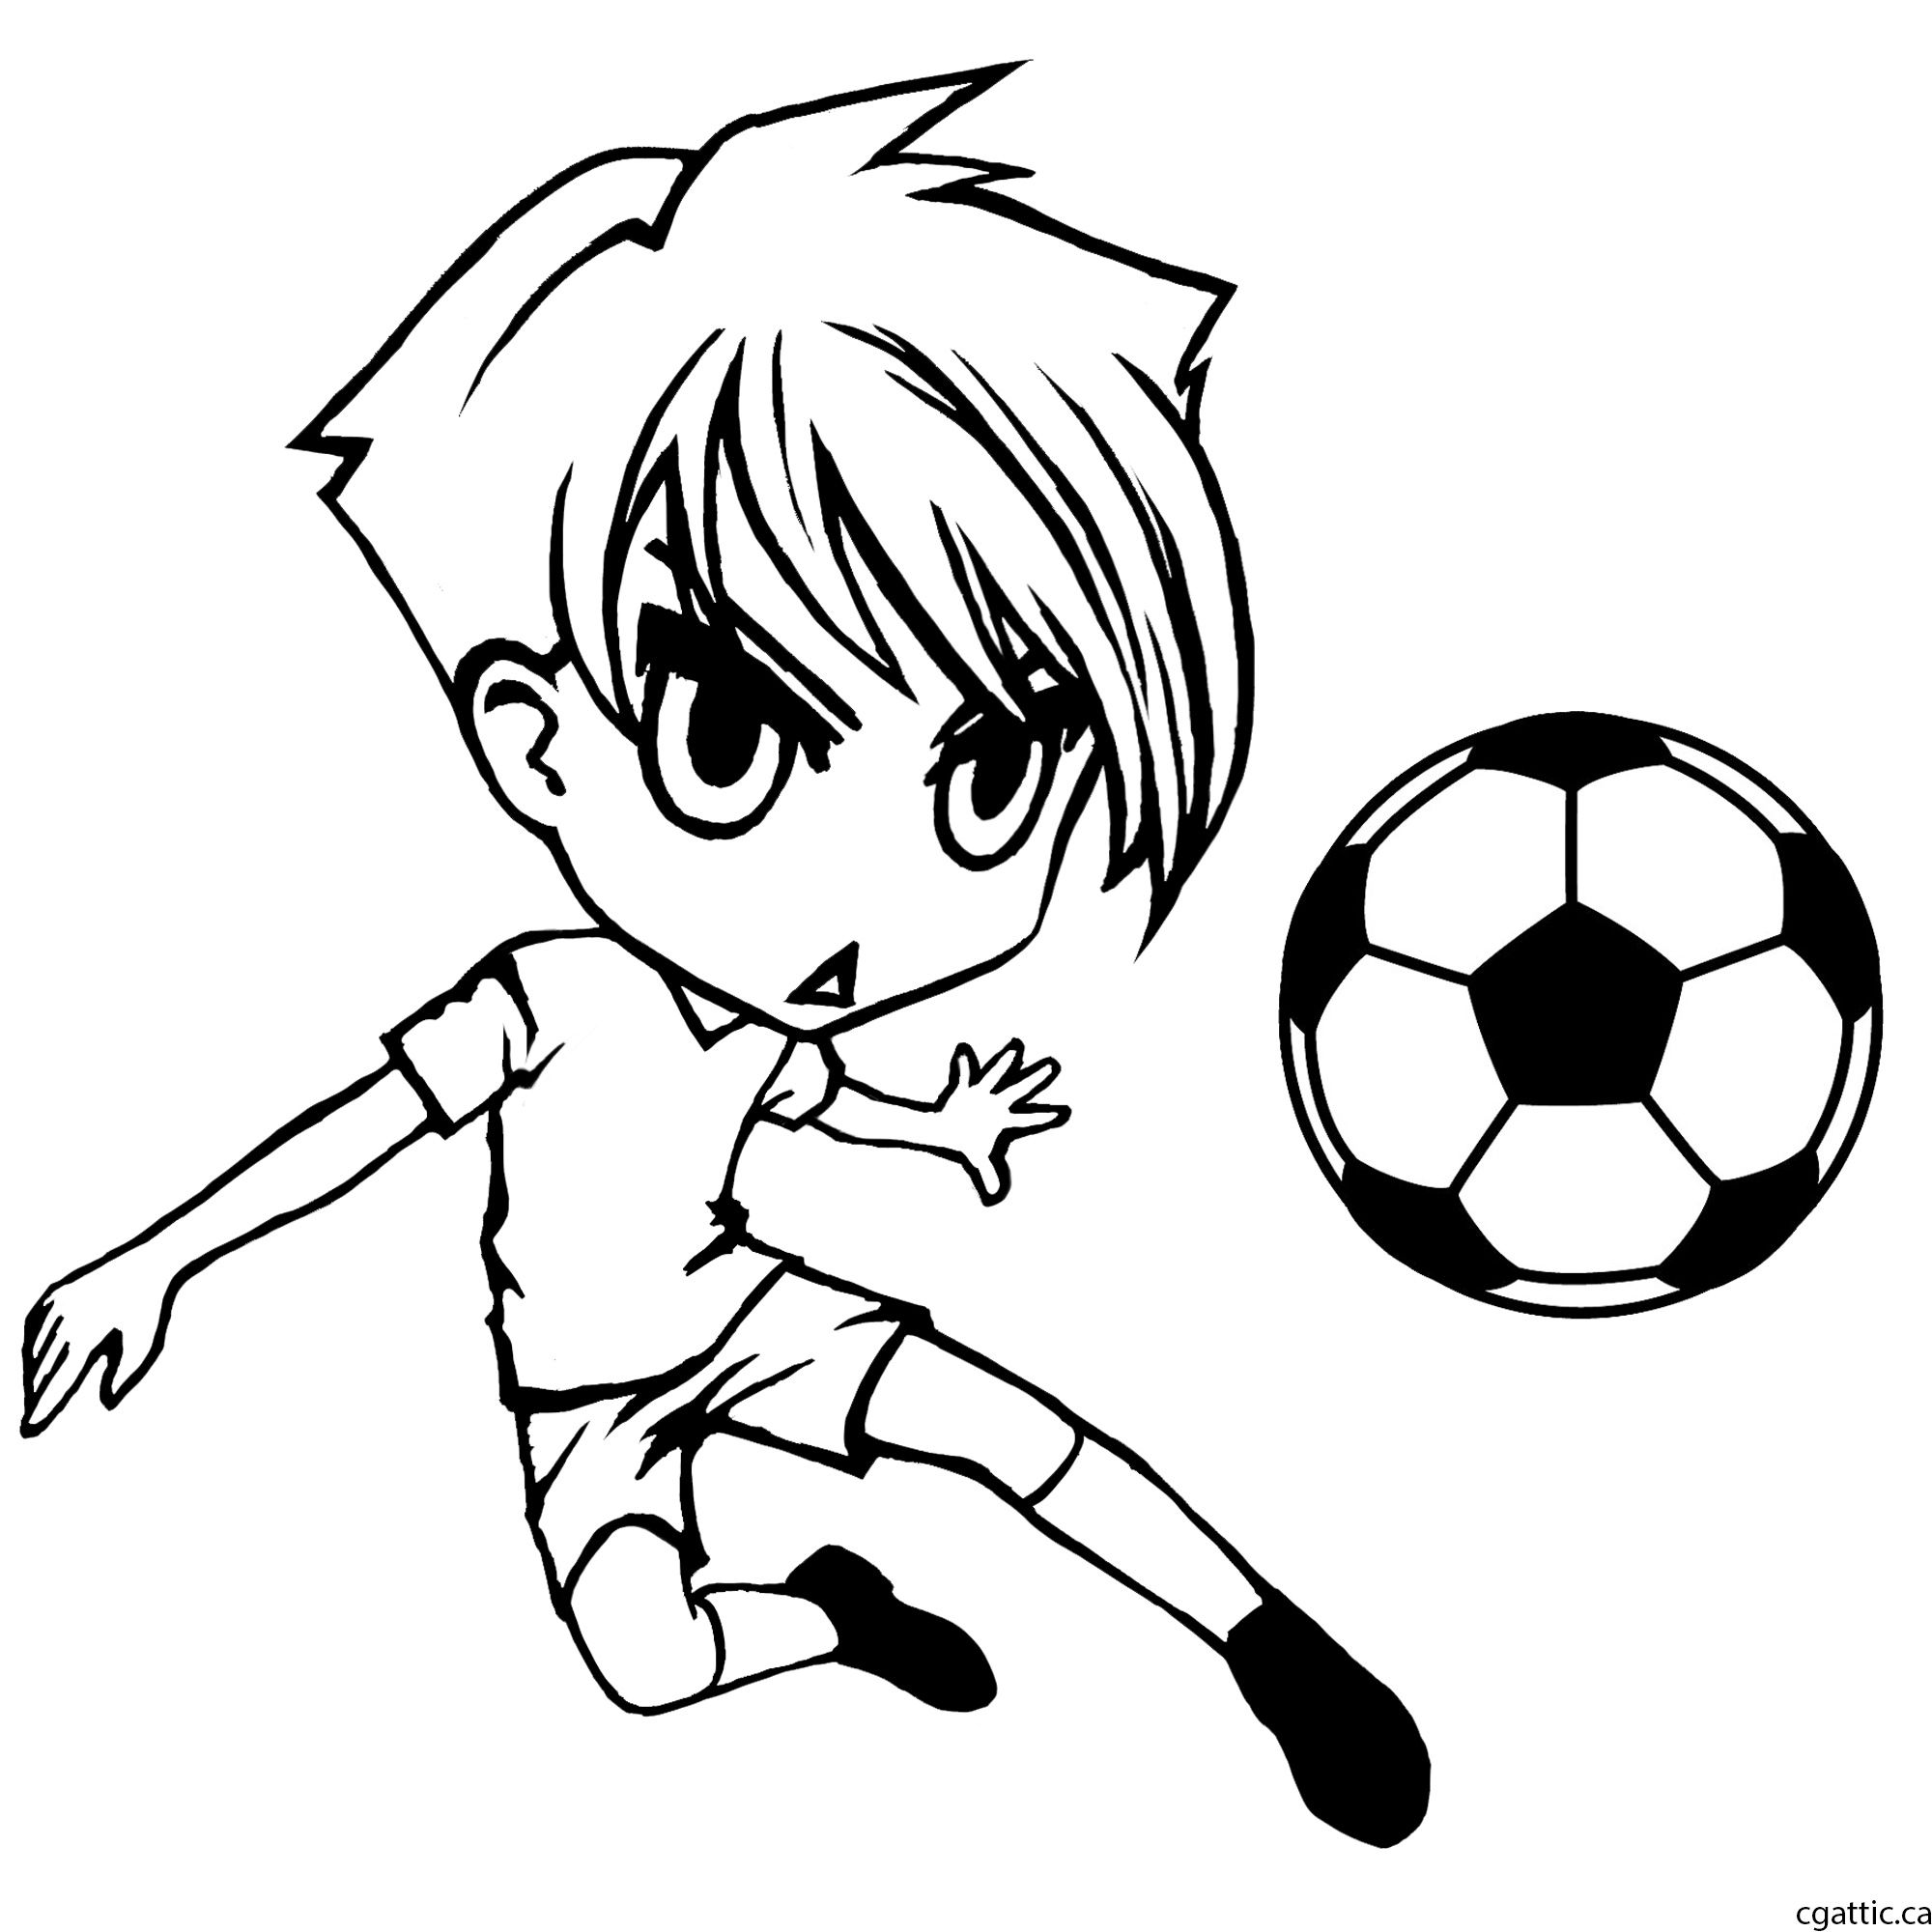 Cartoon Soccer Player Drawing In 4 Steps With Photoshop In